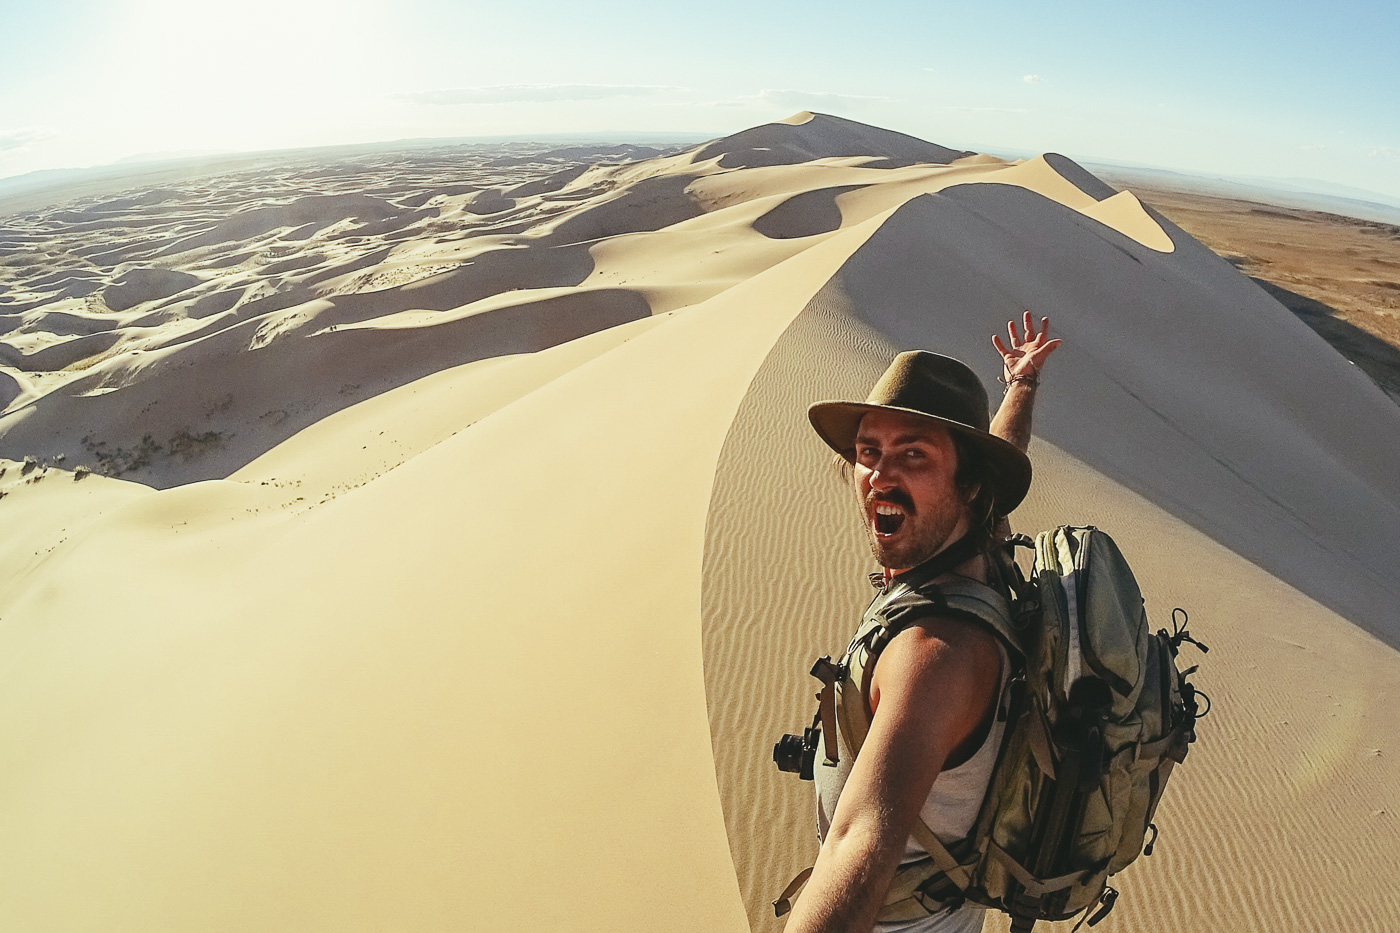 Stefan Haworth on worlds largest sand dune Khongoryn Els in Mongolia